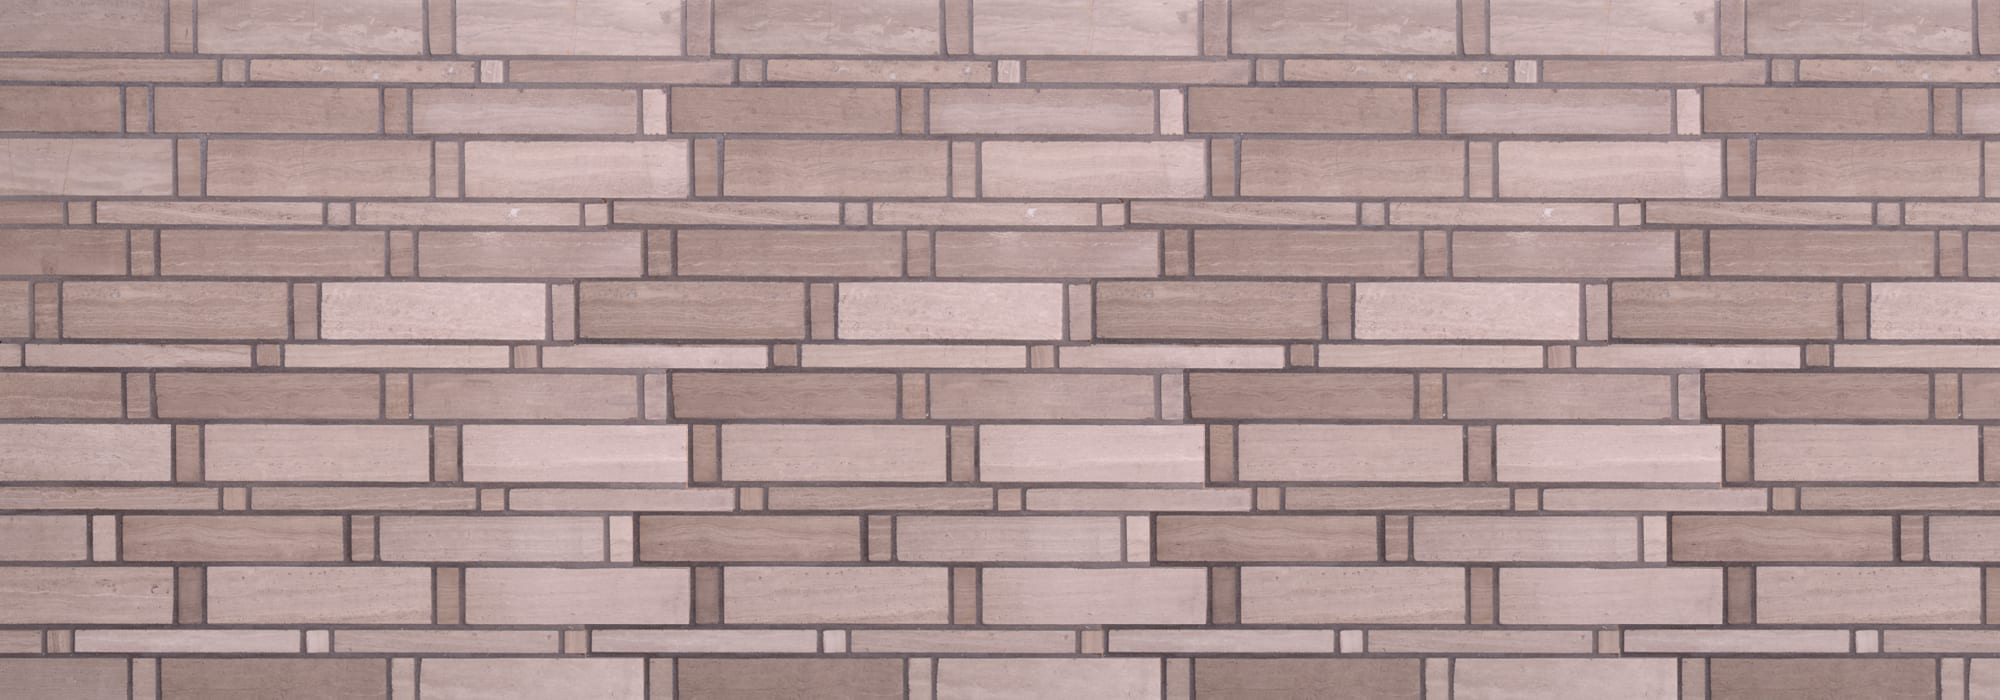 Wood Tile Mosaic by Milstone